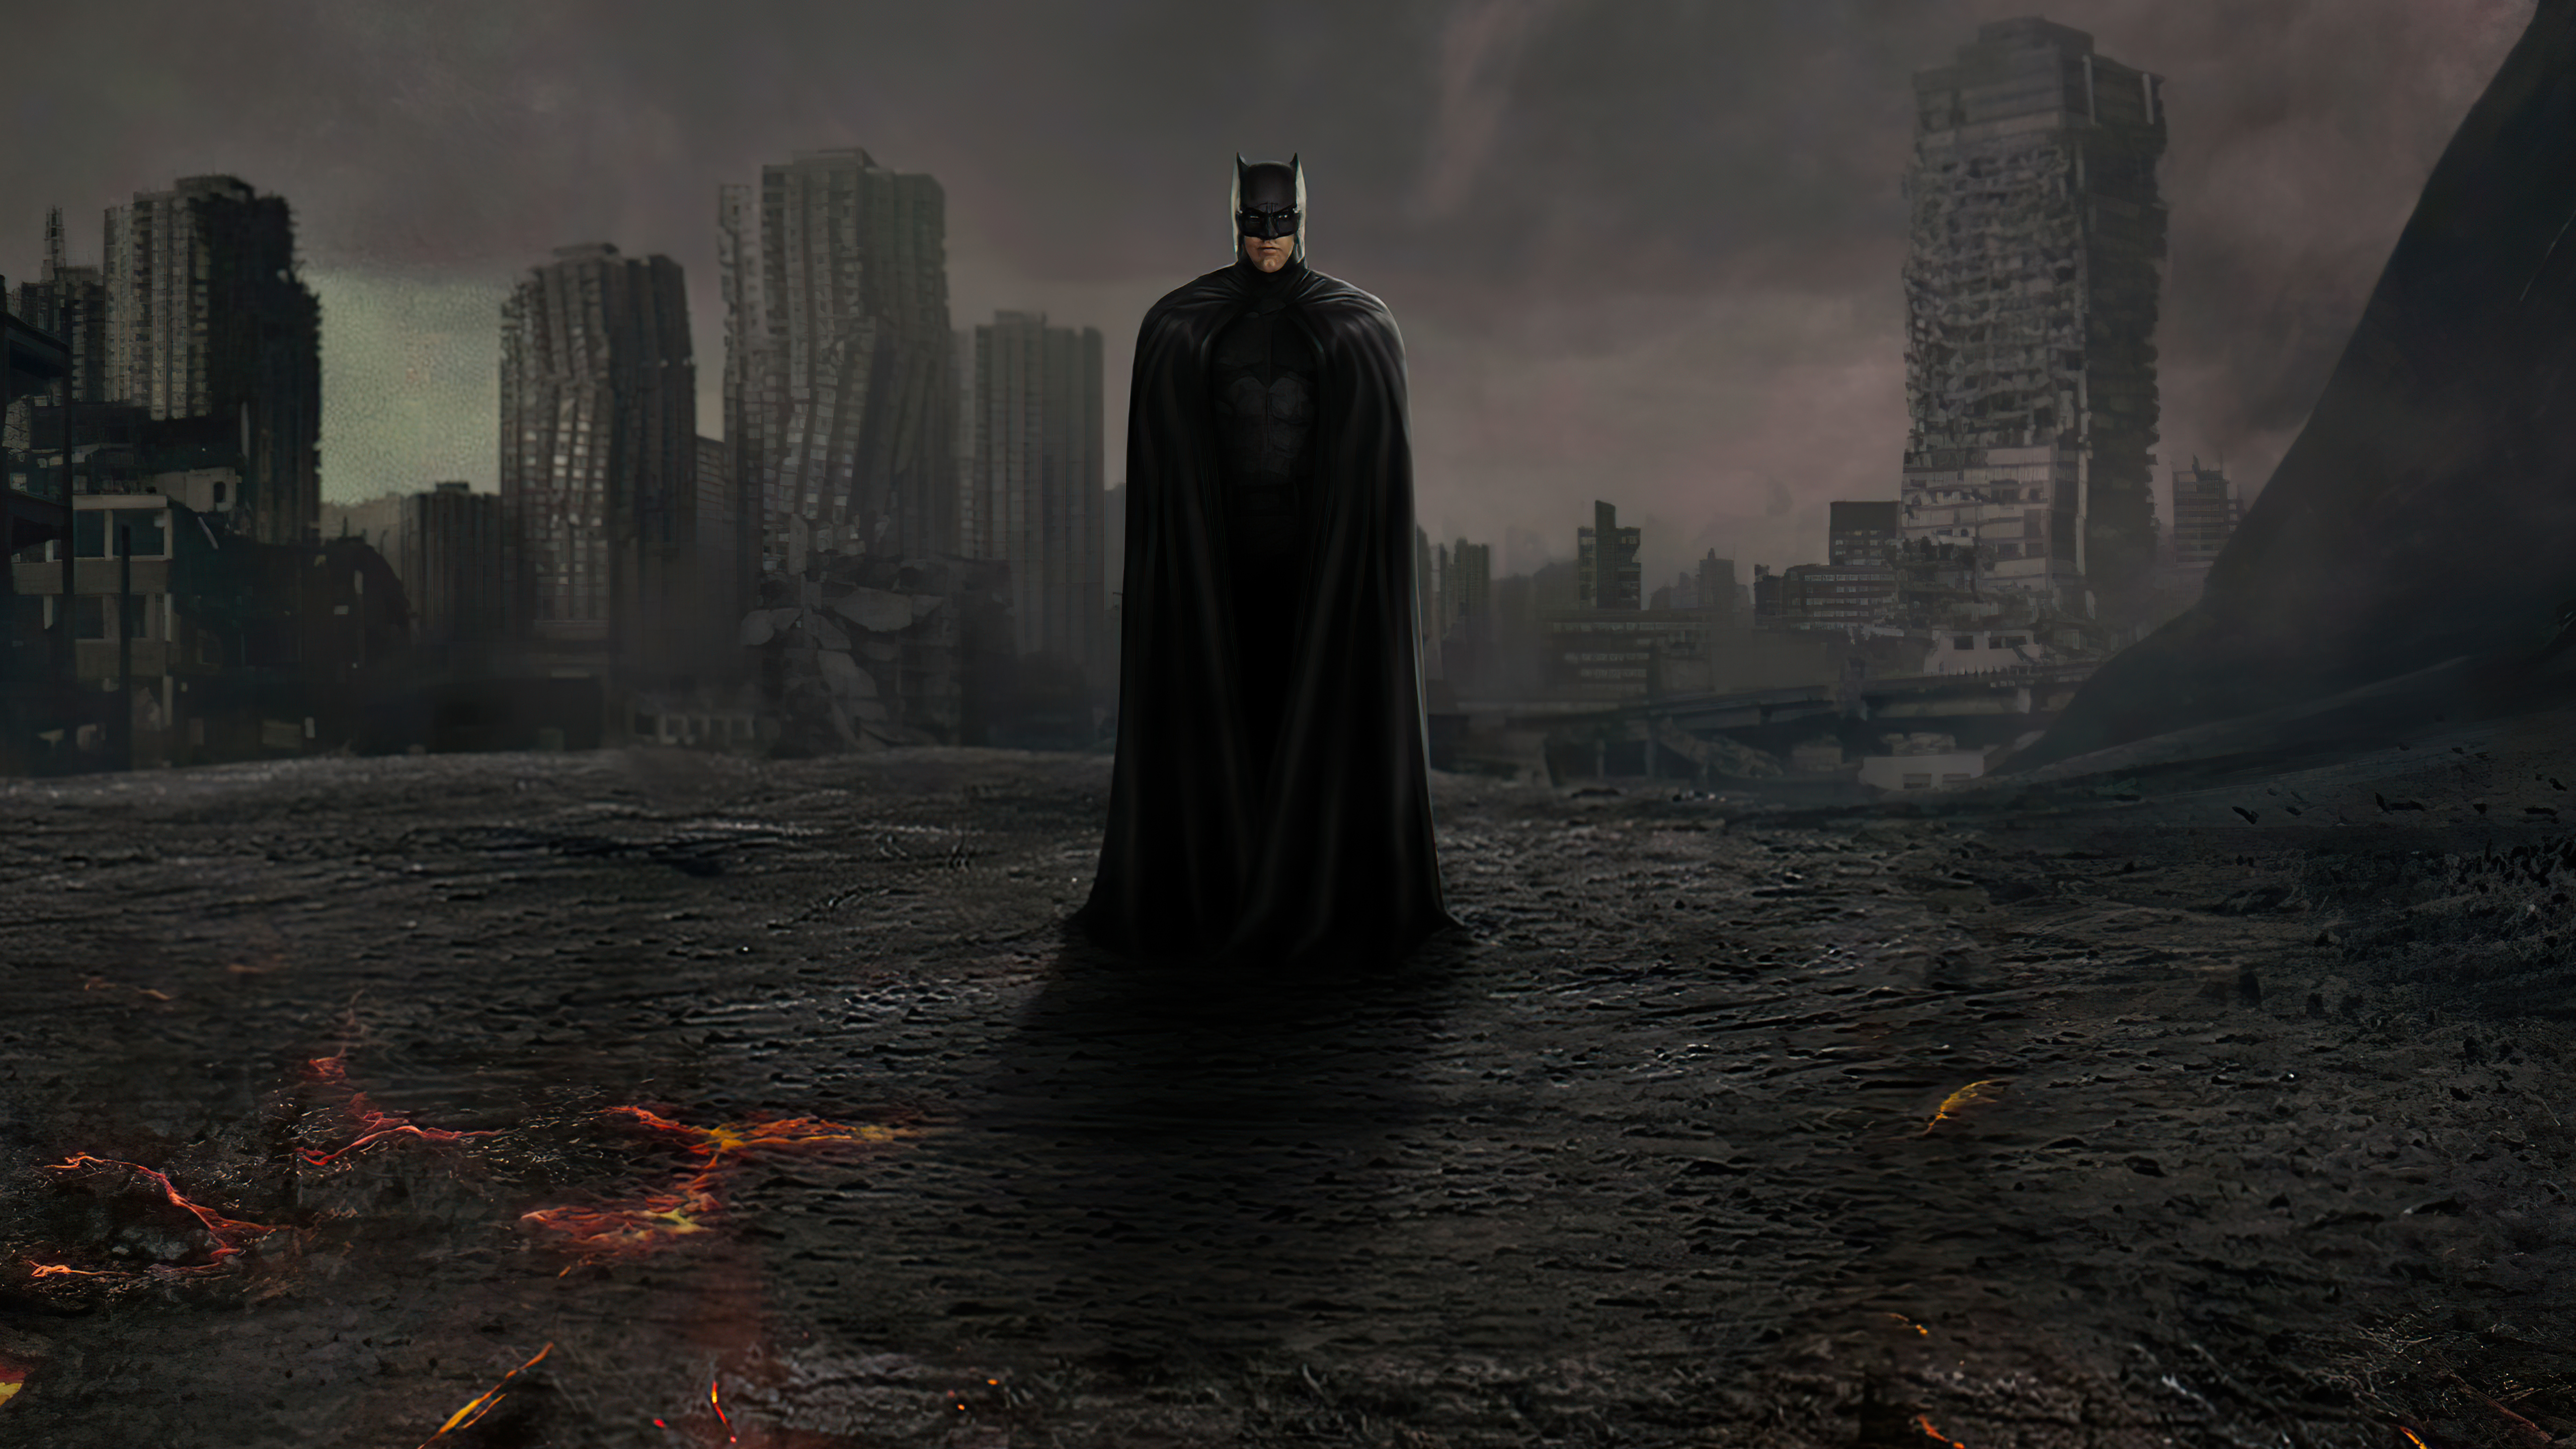 the dark knight zack synders cut justice league 4k 1618165824 - The Dark Knight Zack Synders Cut Justice League 4k - The Dark Knight Zack Synders Cut Justice League 4k wallpapers